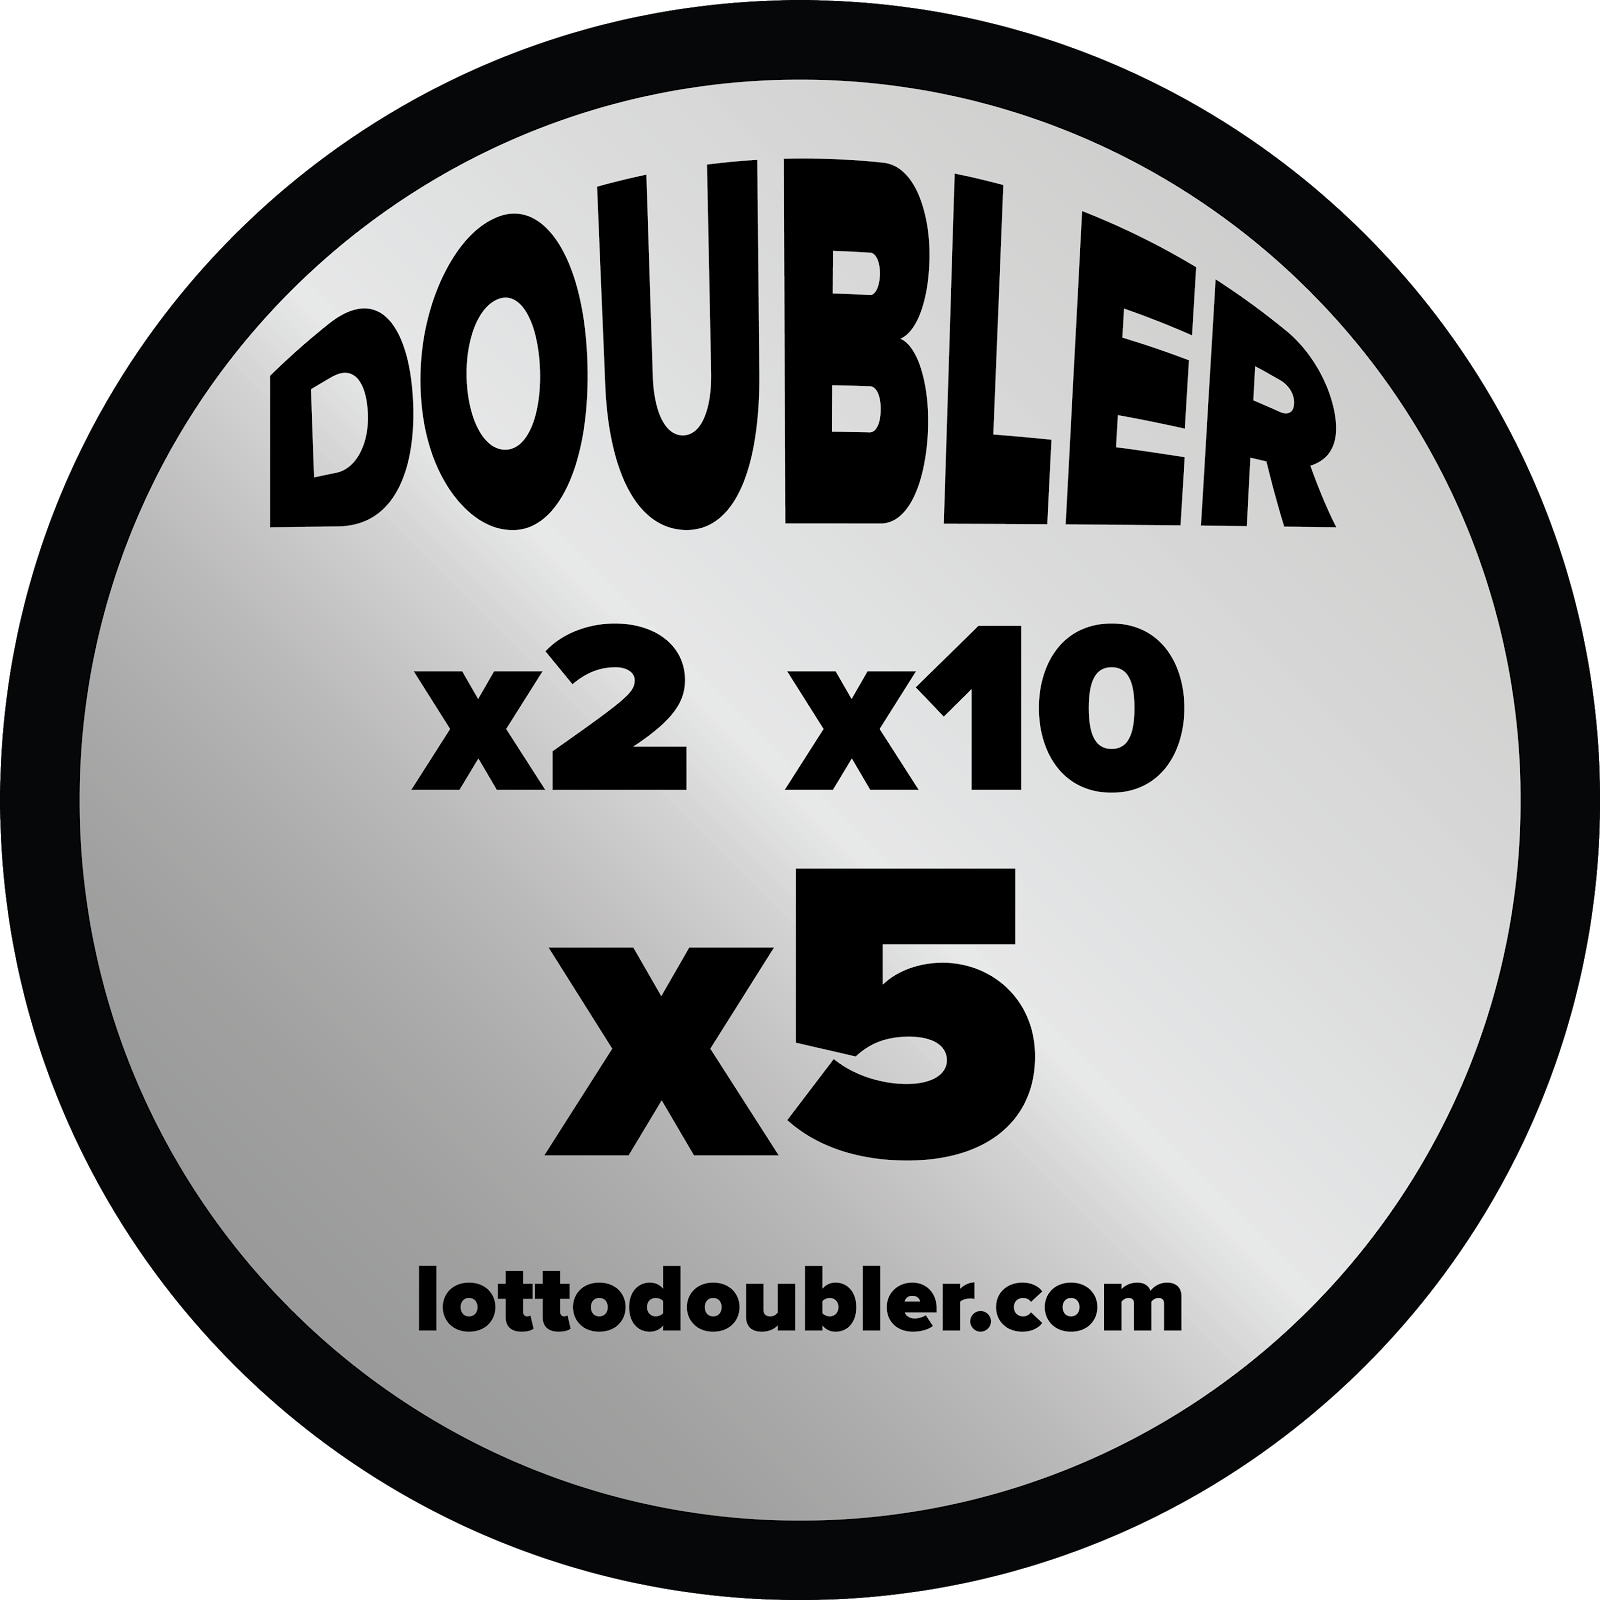 It's all about the doubler! | x2, x5, x10